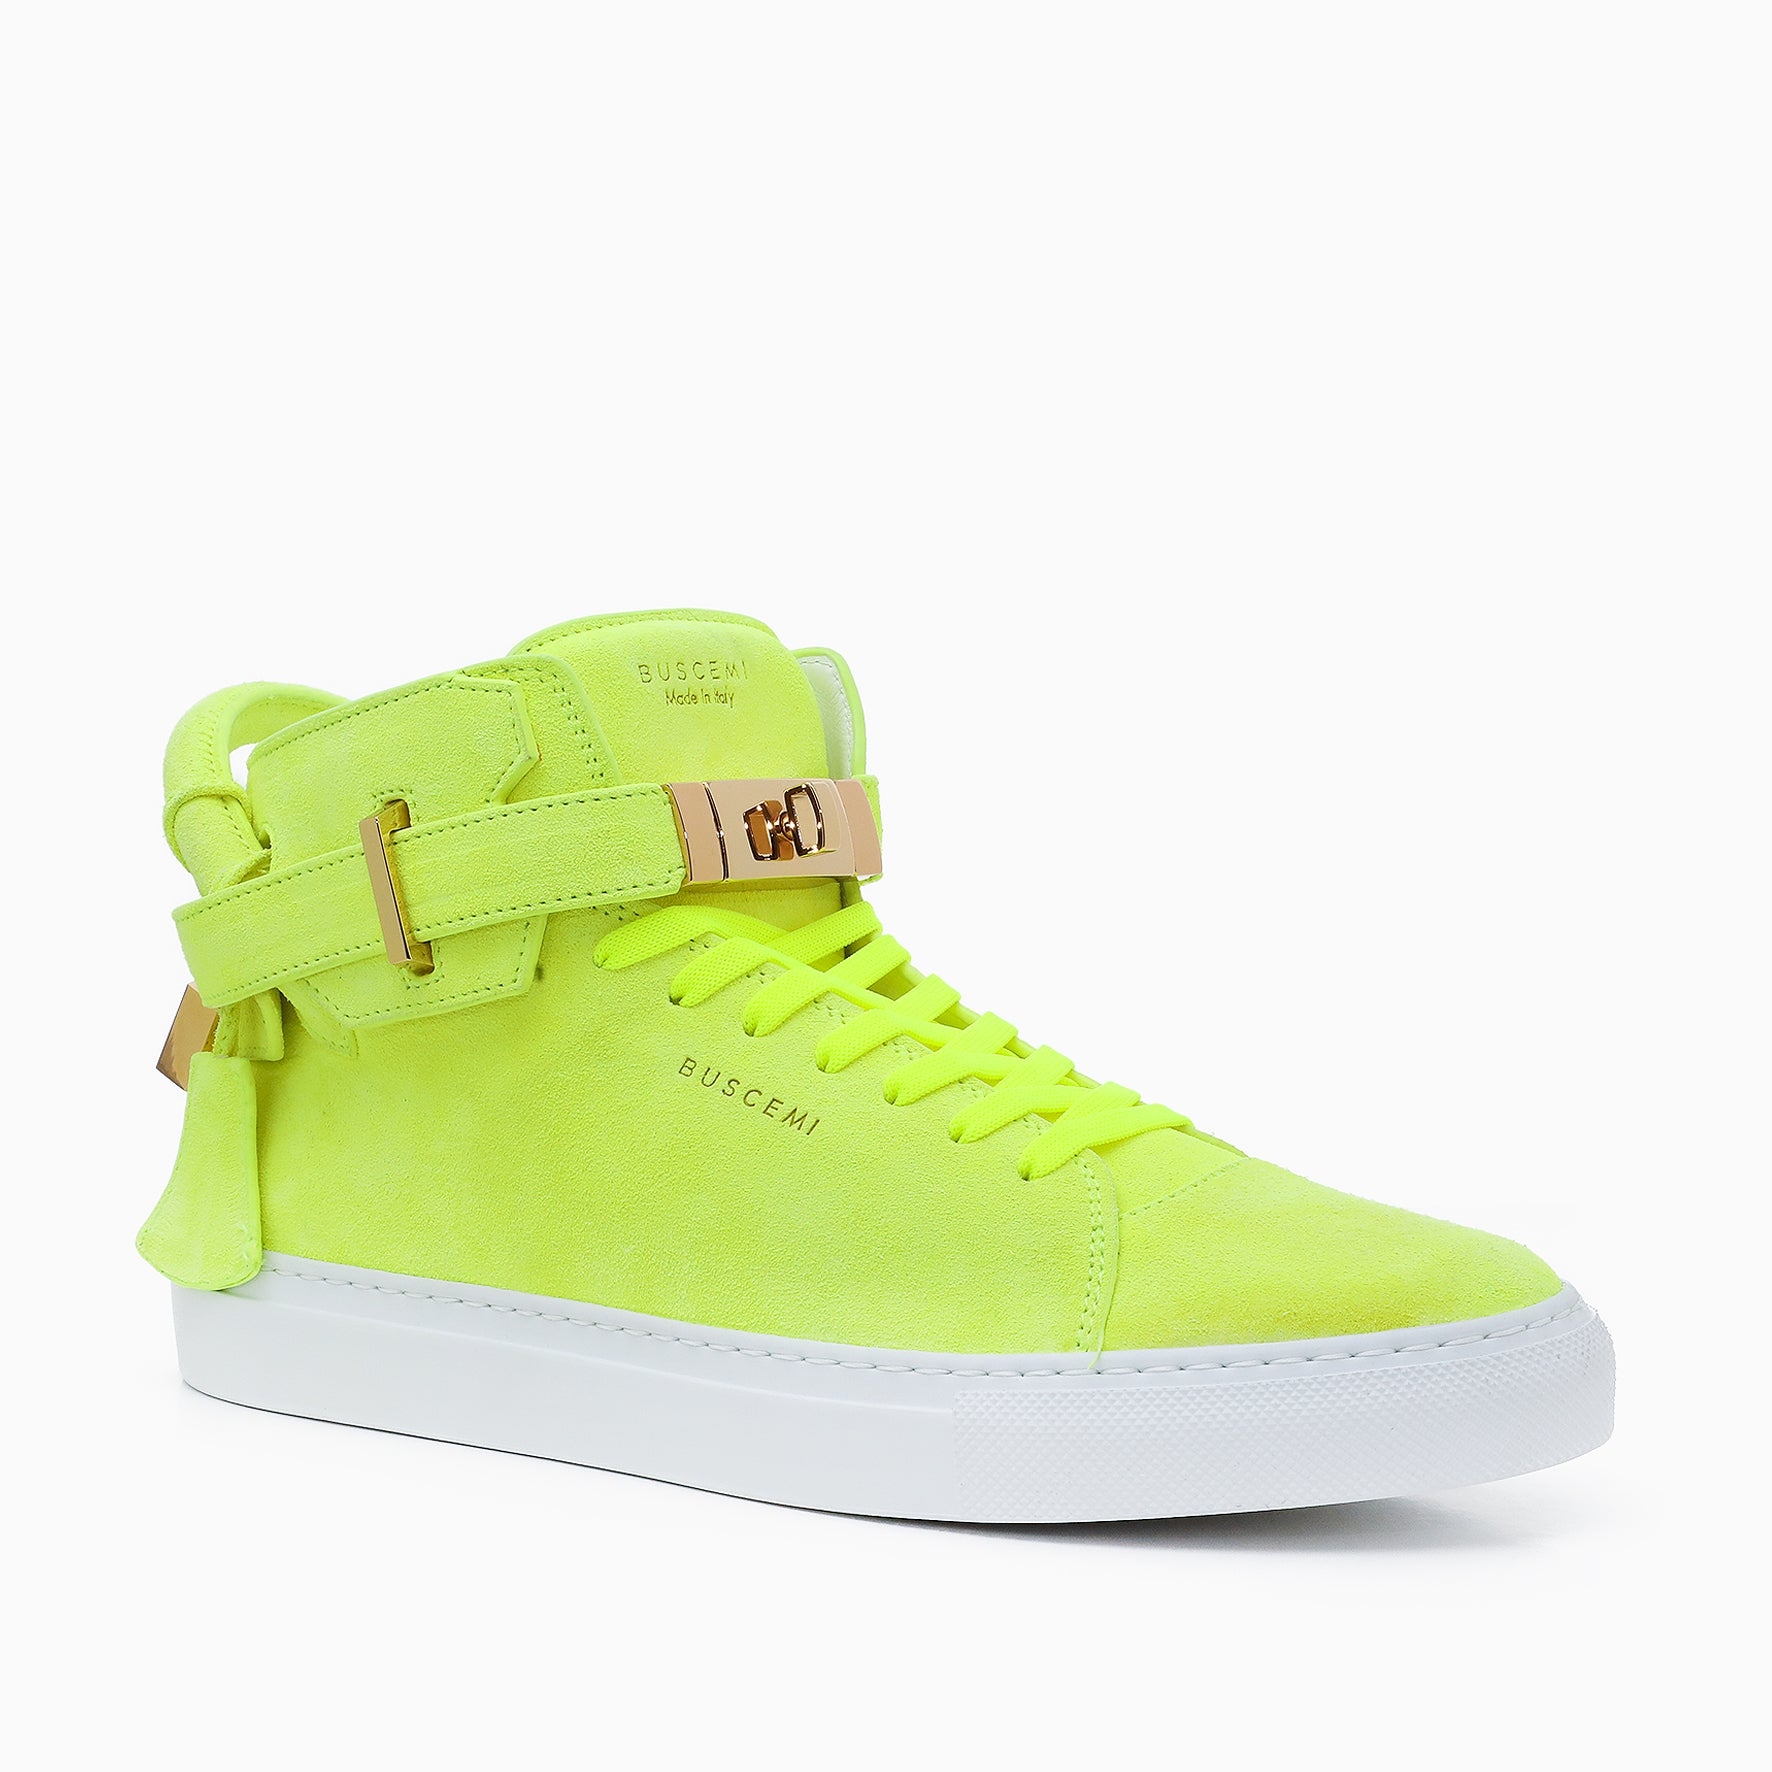 Mens italian leather high top yellow sneaker from Buscemi